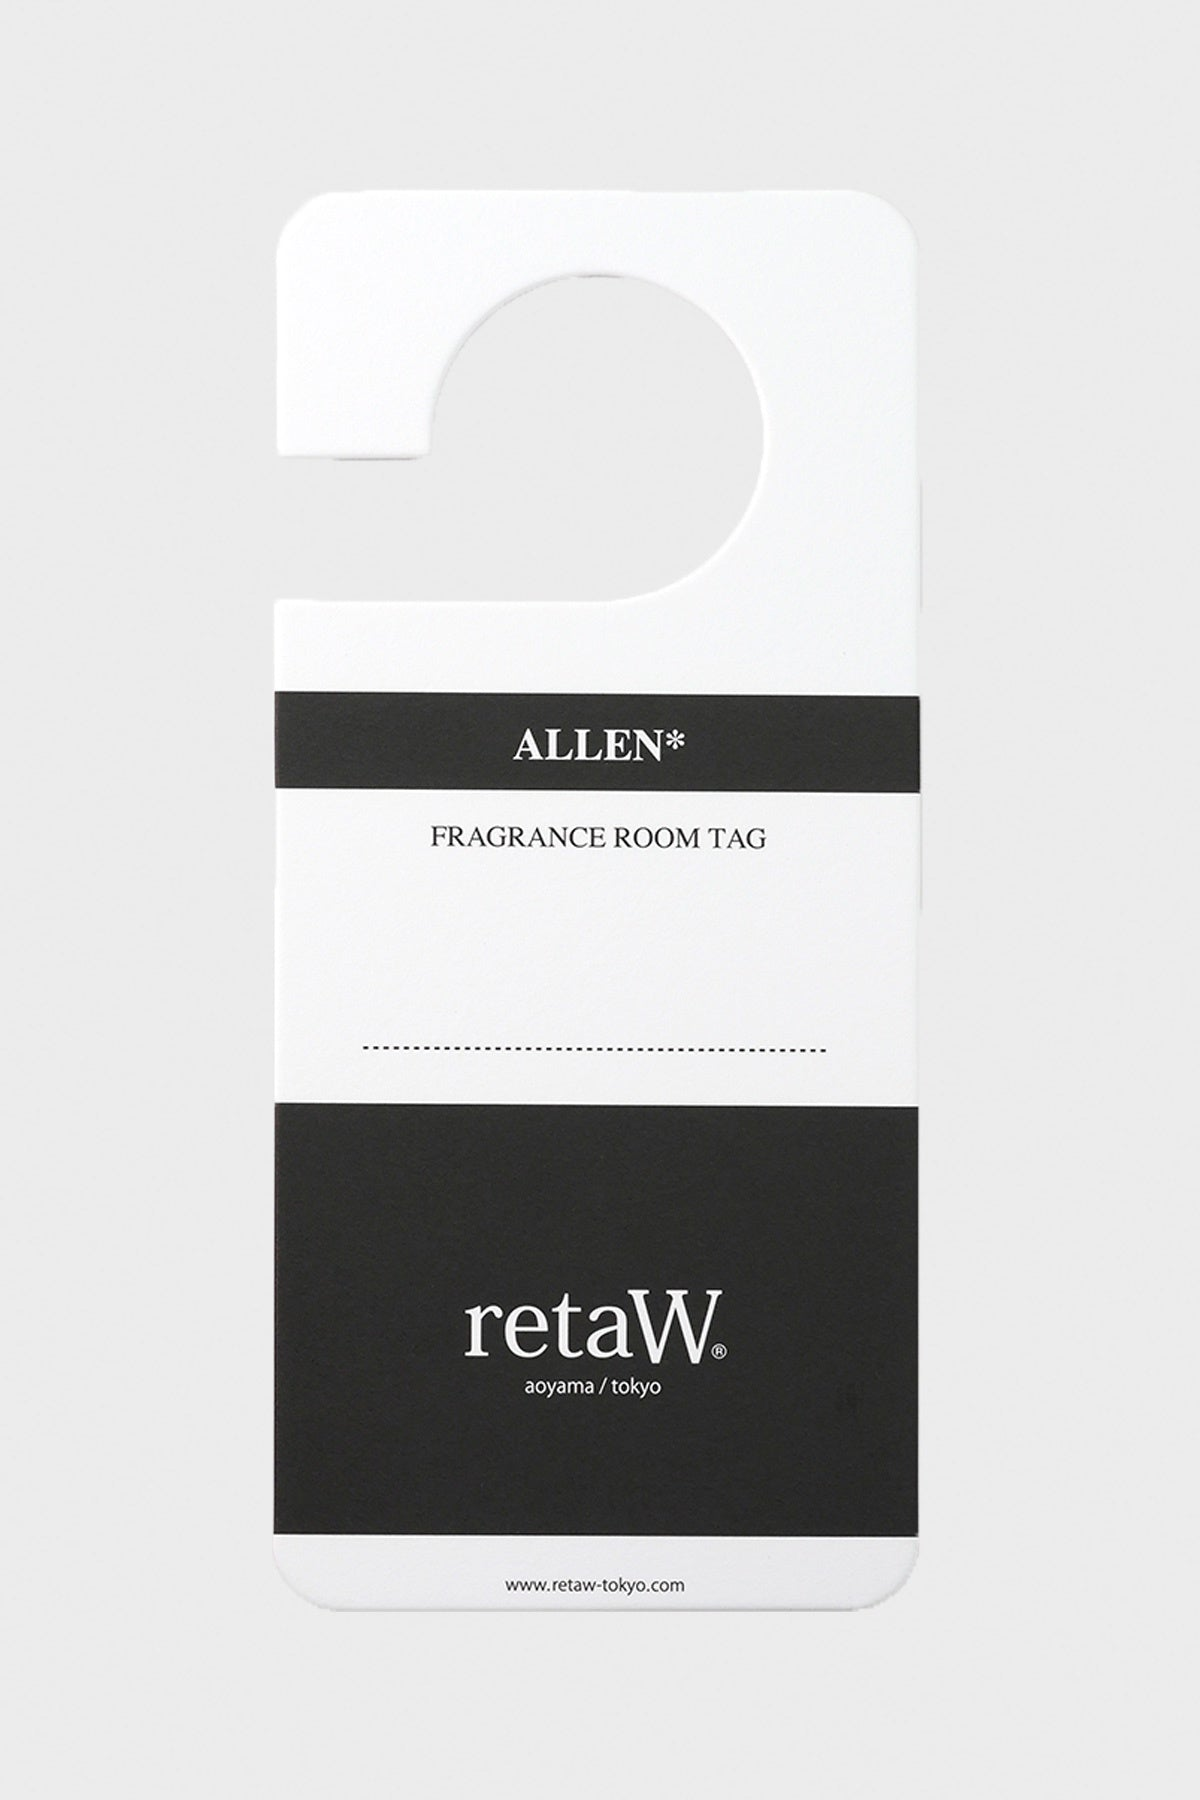 retaW - Fragrance Room Tag - Allen - Canoe Club